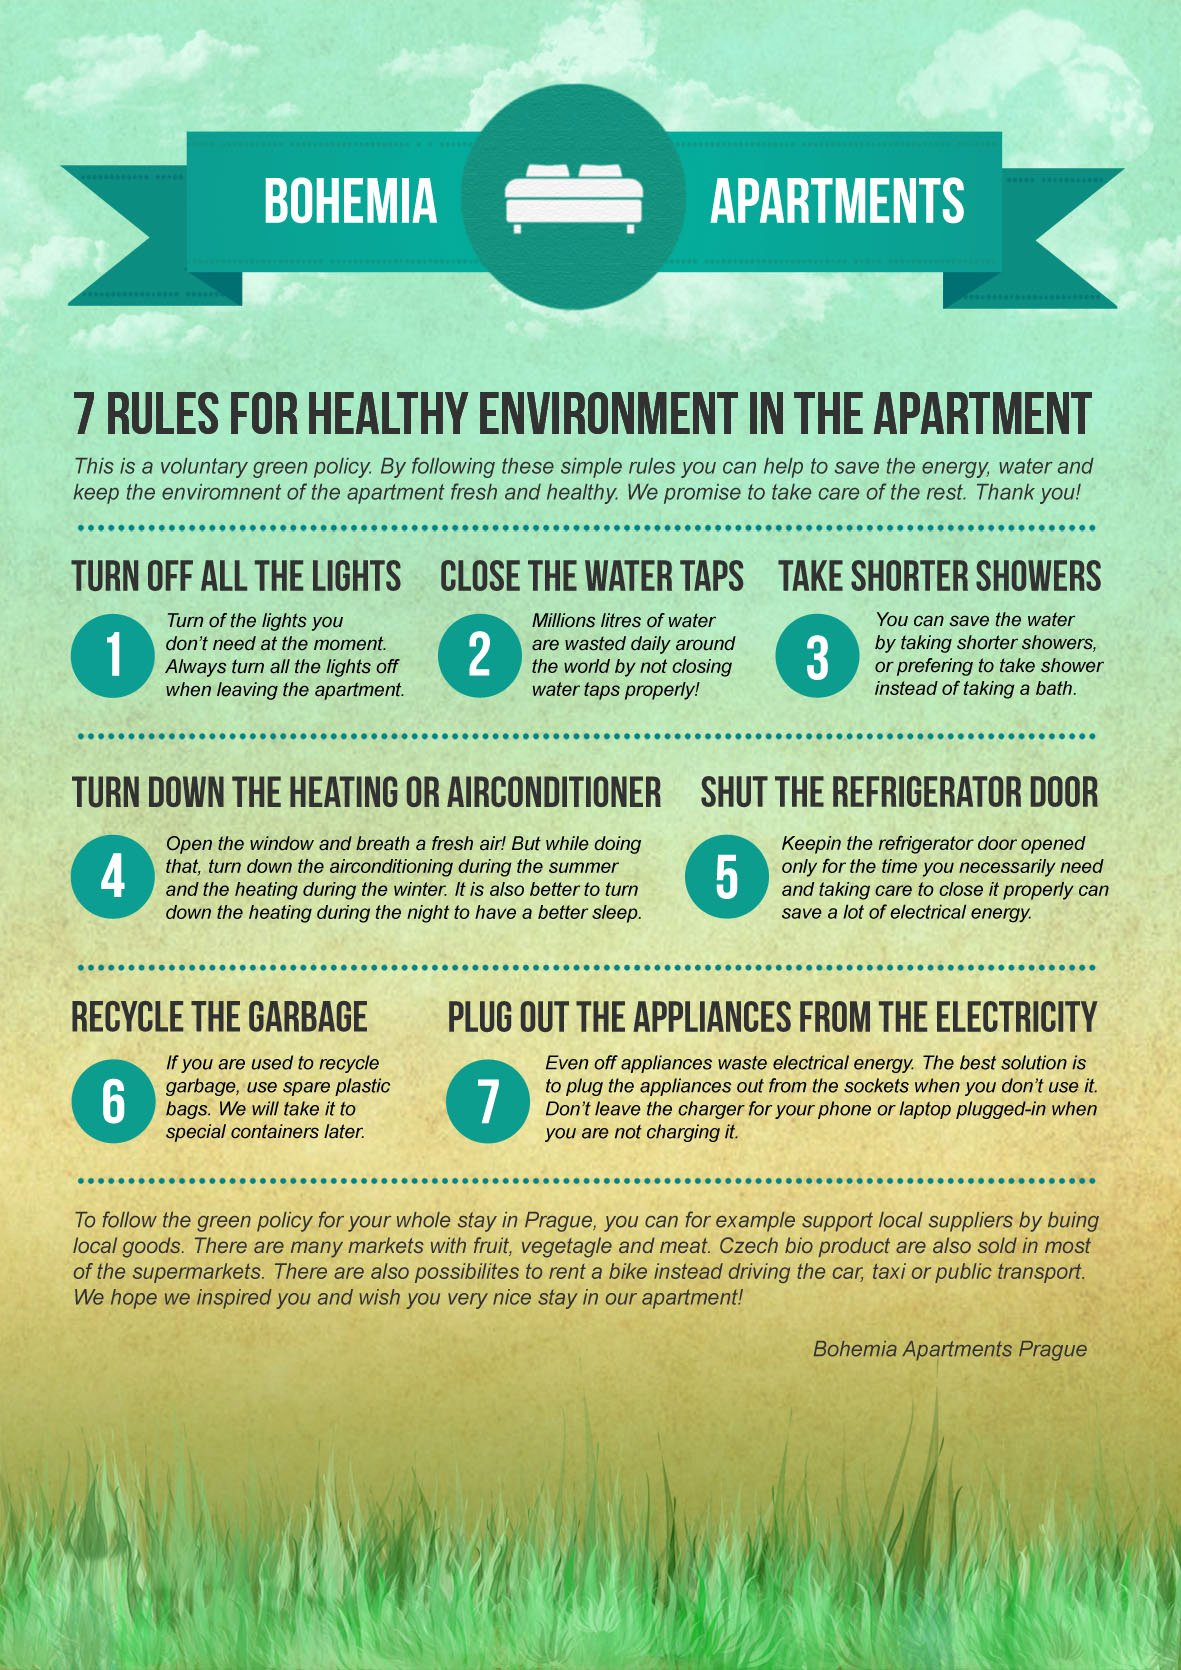 Vacation Rental House Rules Template New 7 Rules for Healthy Environment In the Apartment